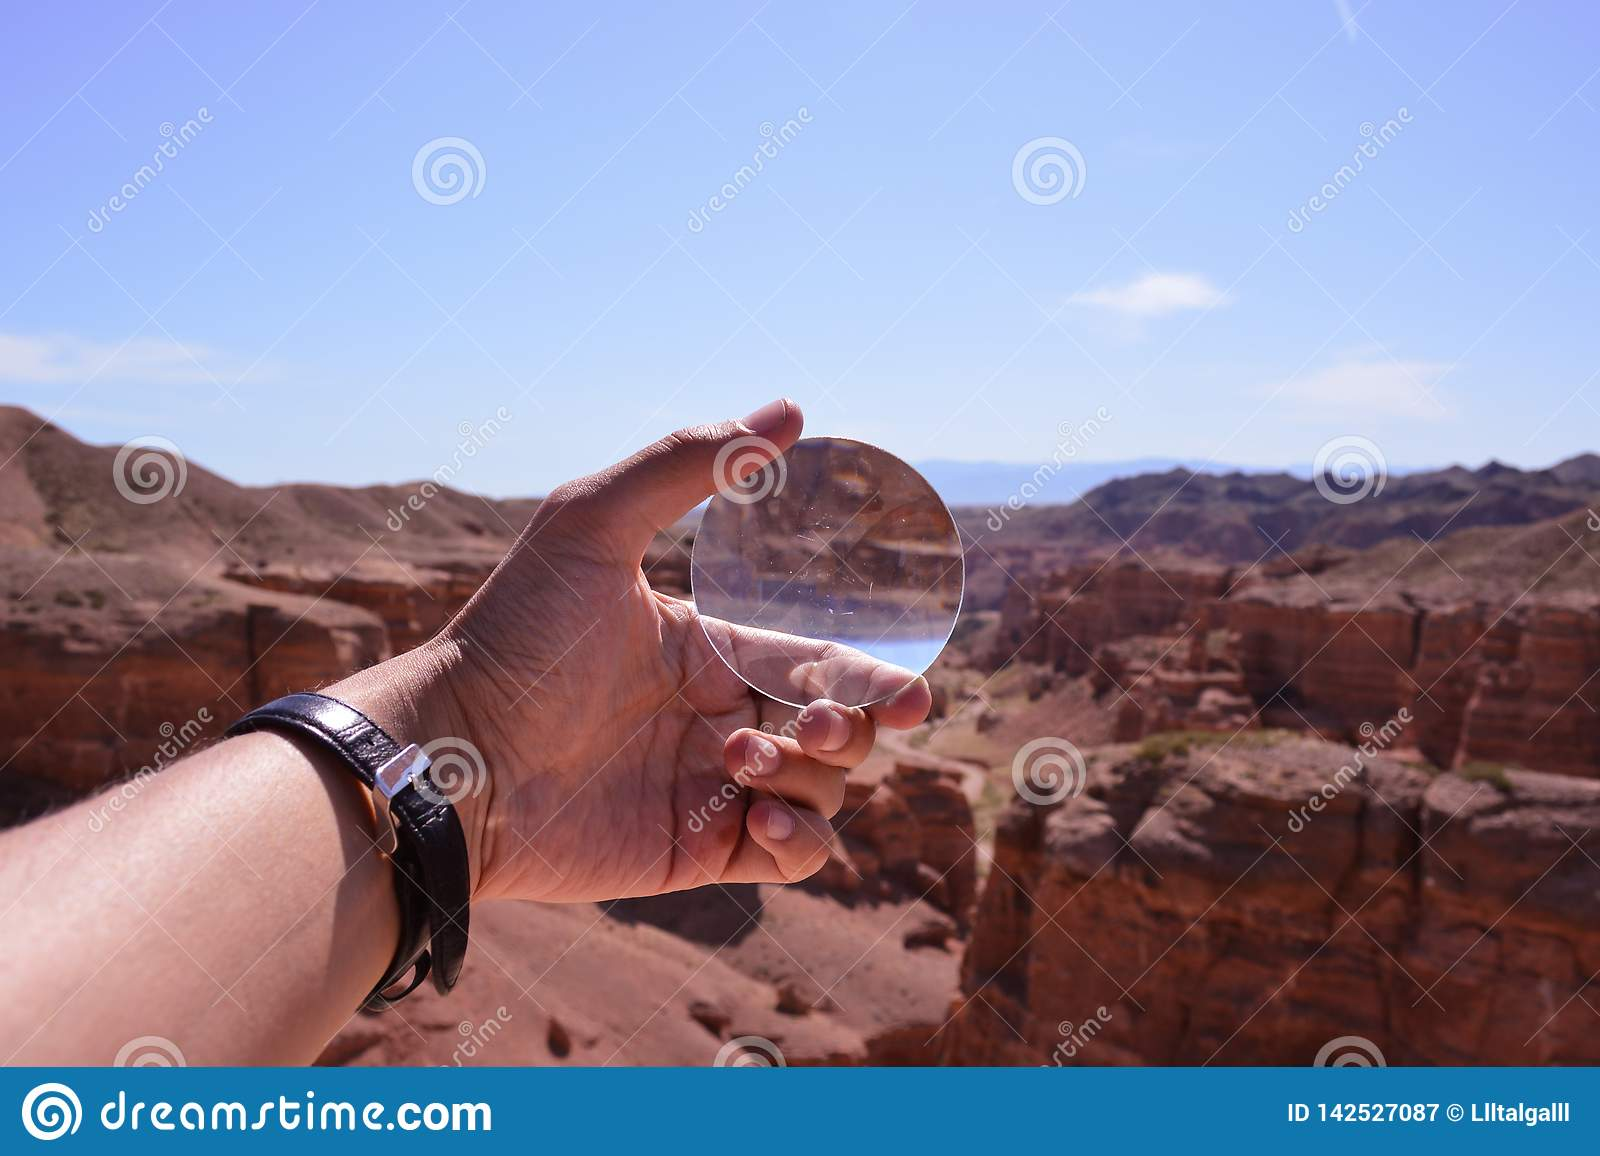 Magnifying glass. Charyn canyon.